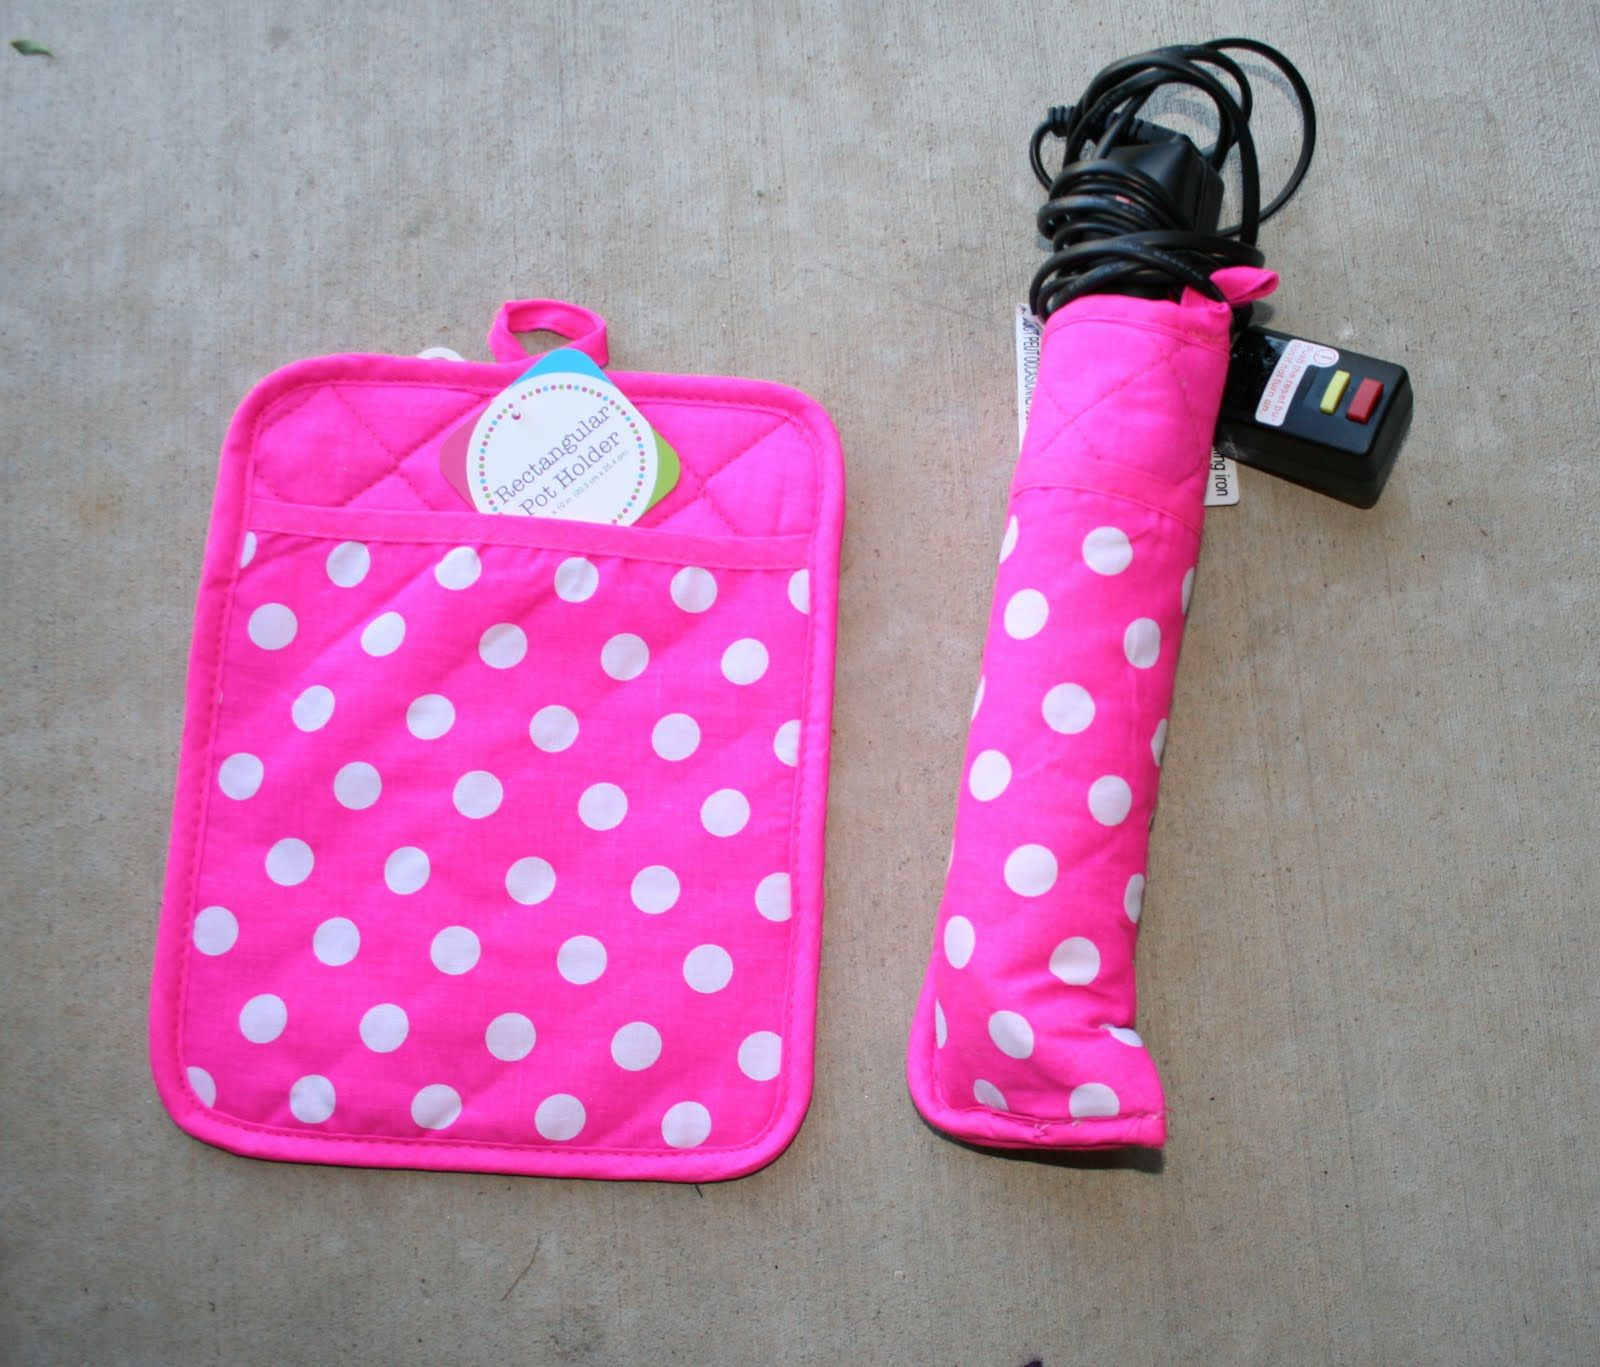 Make a cover for curling iron from a hot pad - so you can put it ...